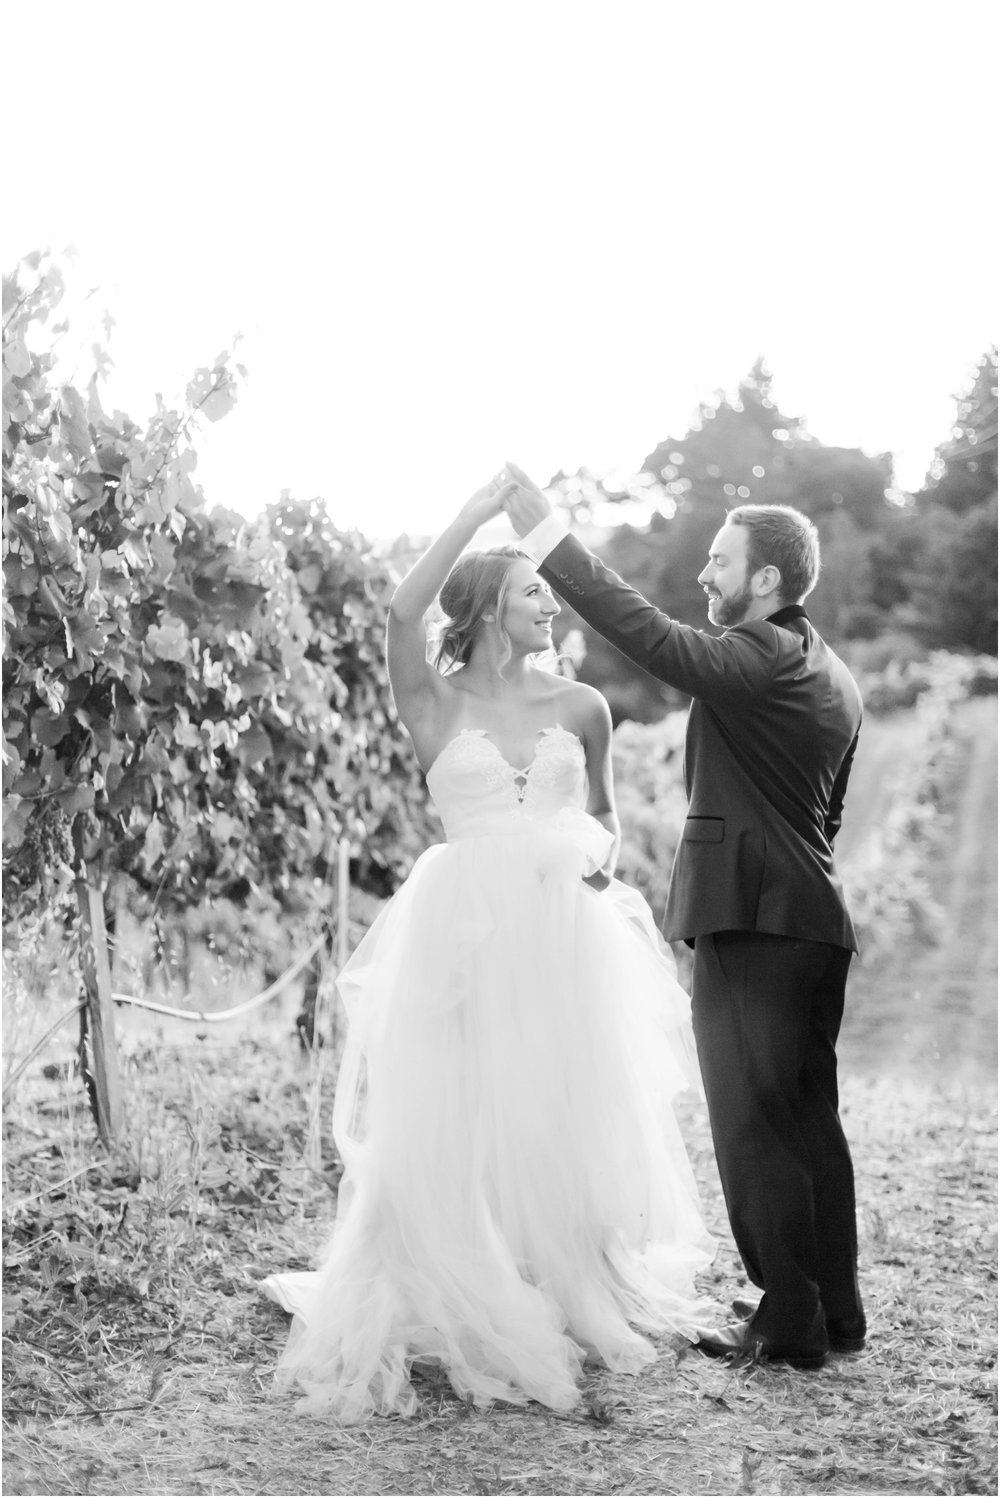 Byington Winery wedding pictures by Briana Calderon Photography_1453.jpg